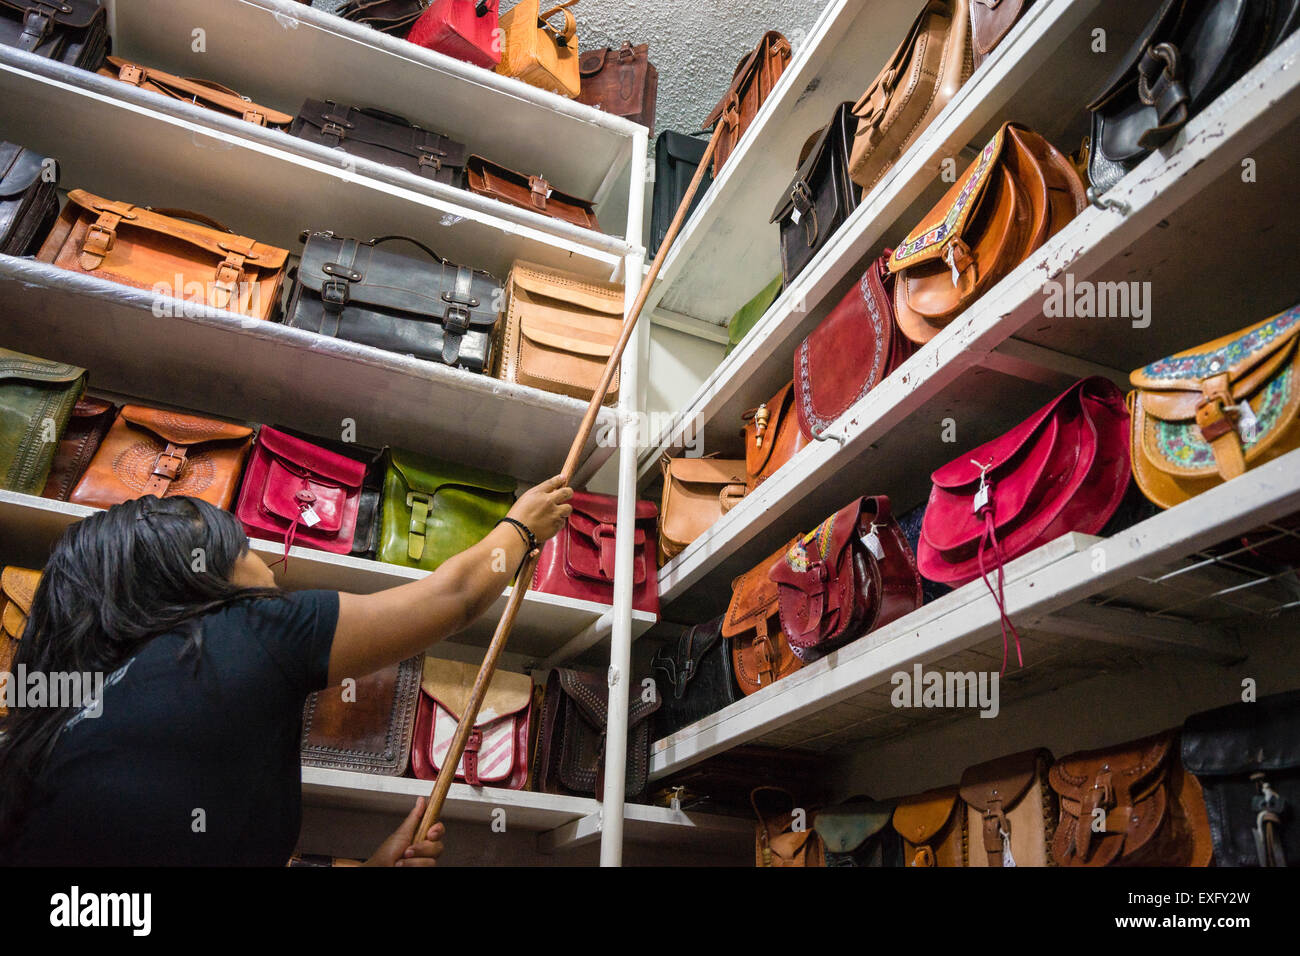 Woman reaching to get leather handbag from top shelf in a stall at a market in Oaxaca Mexico - Stock Image